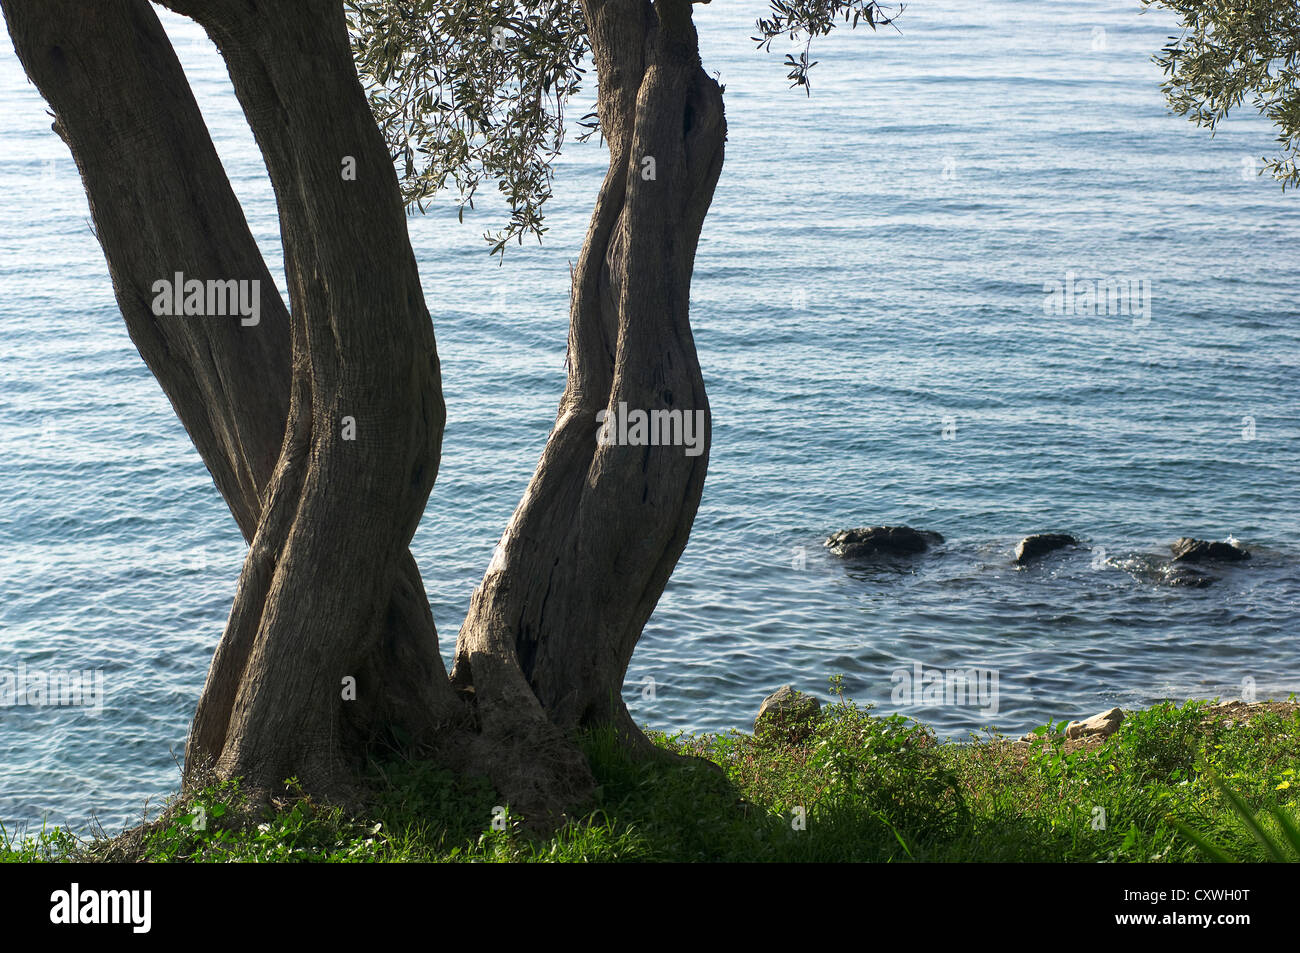 Olive tree by the sea - Stock Image